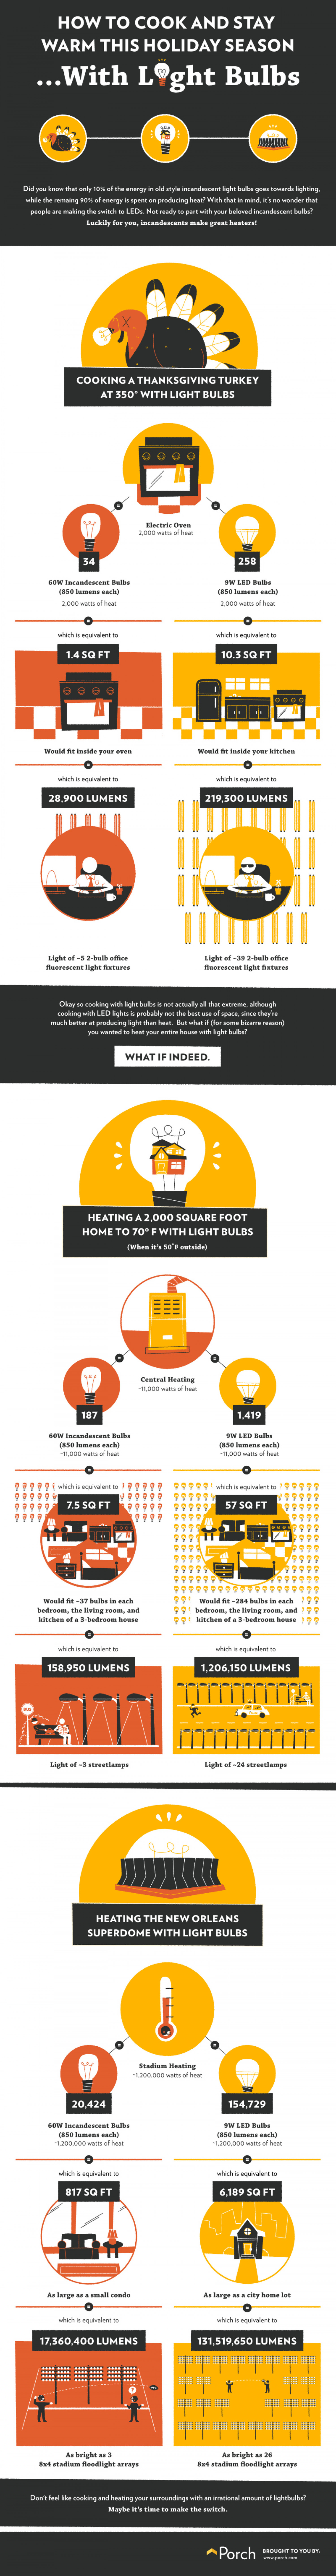 How to Cook and Stay Warm This Holiday Season Infographic